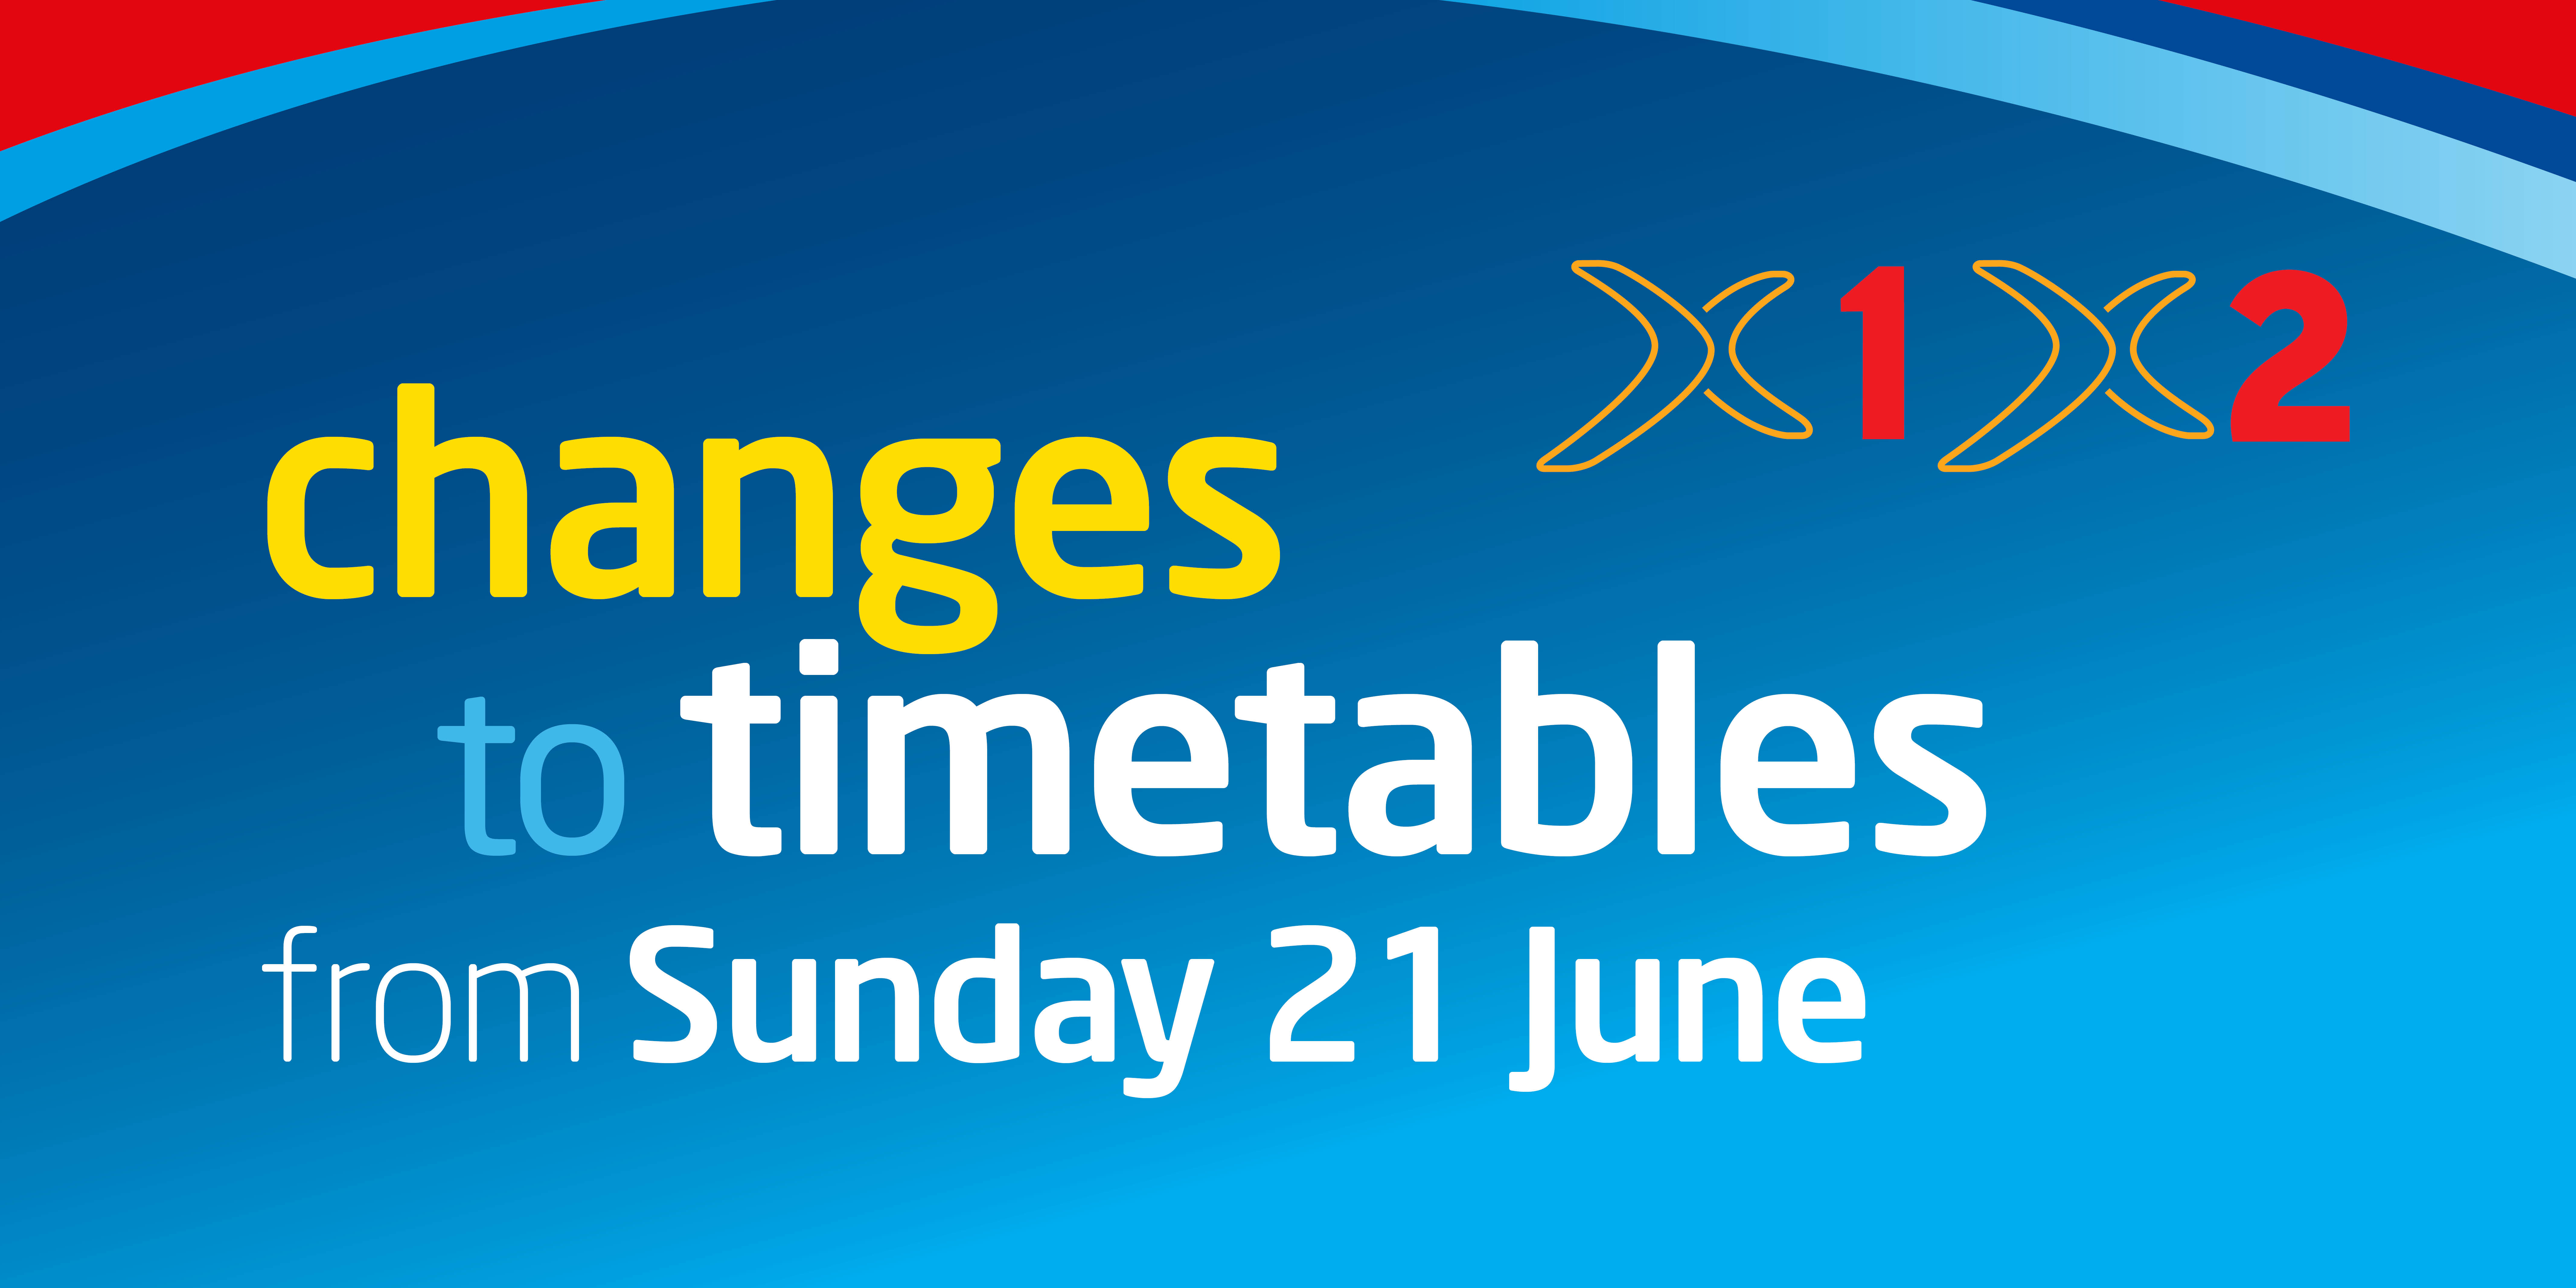 Image reading 'changes to timetables from Sunday 21 June - X1 and X2)